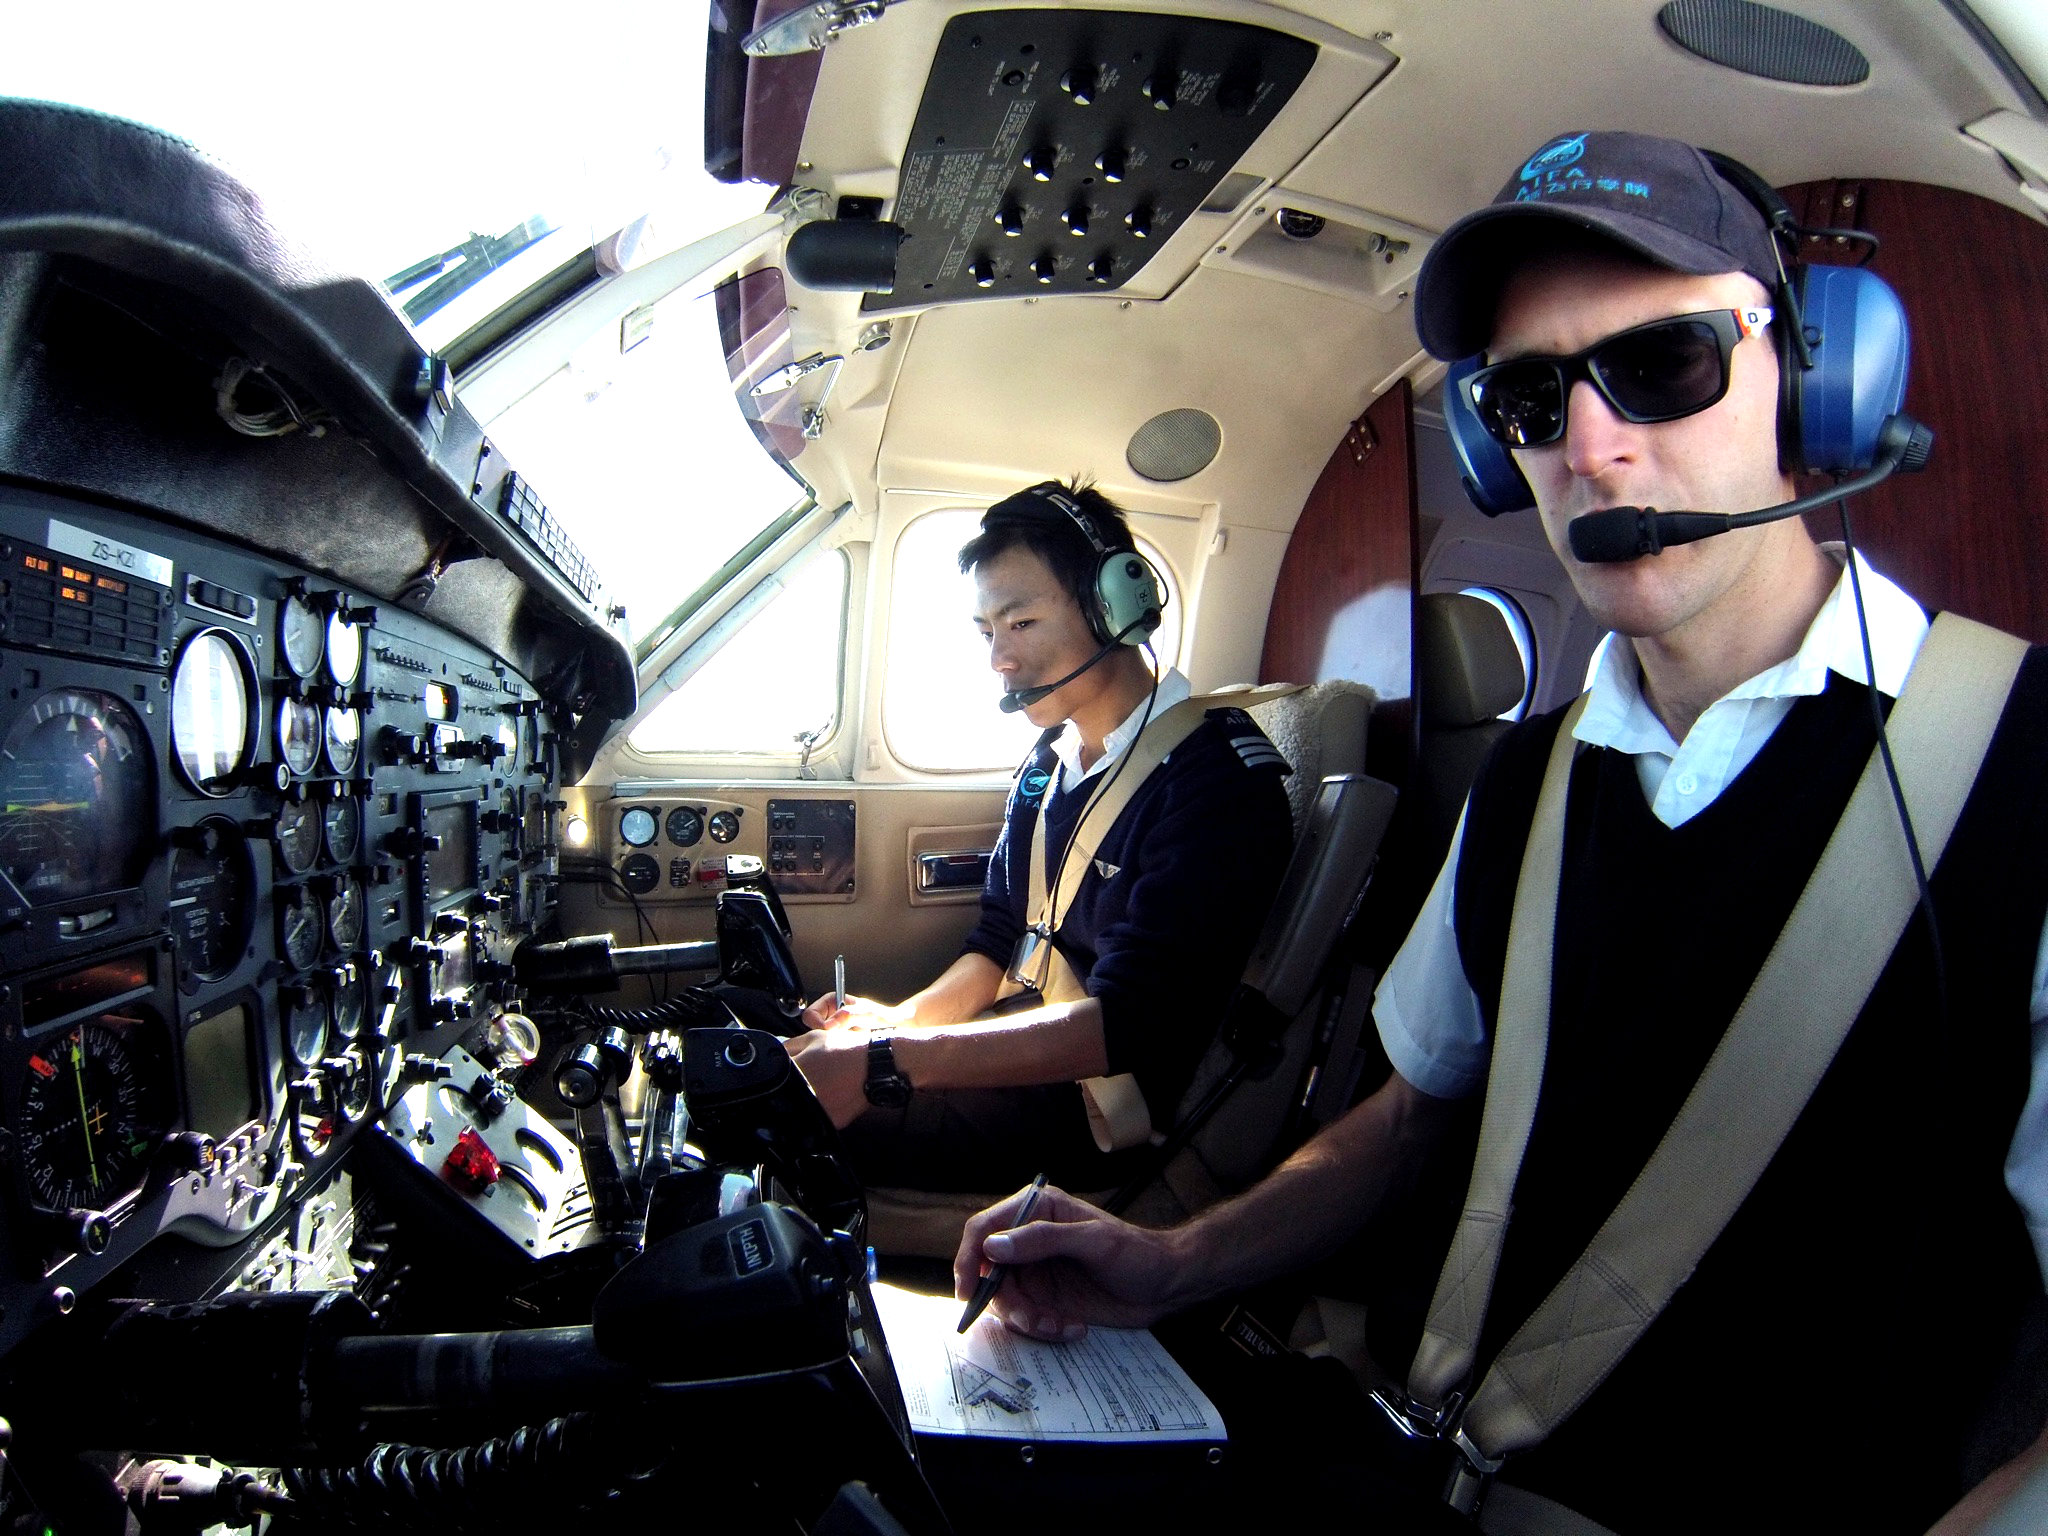 I enjoyed the flight at the flight school, but needed to use it for something more